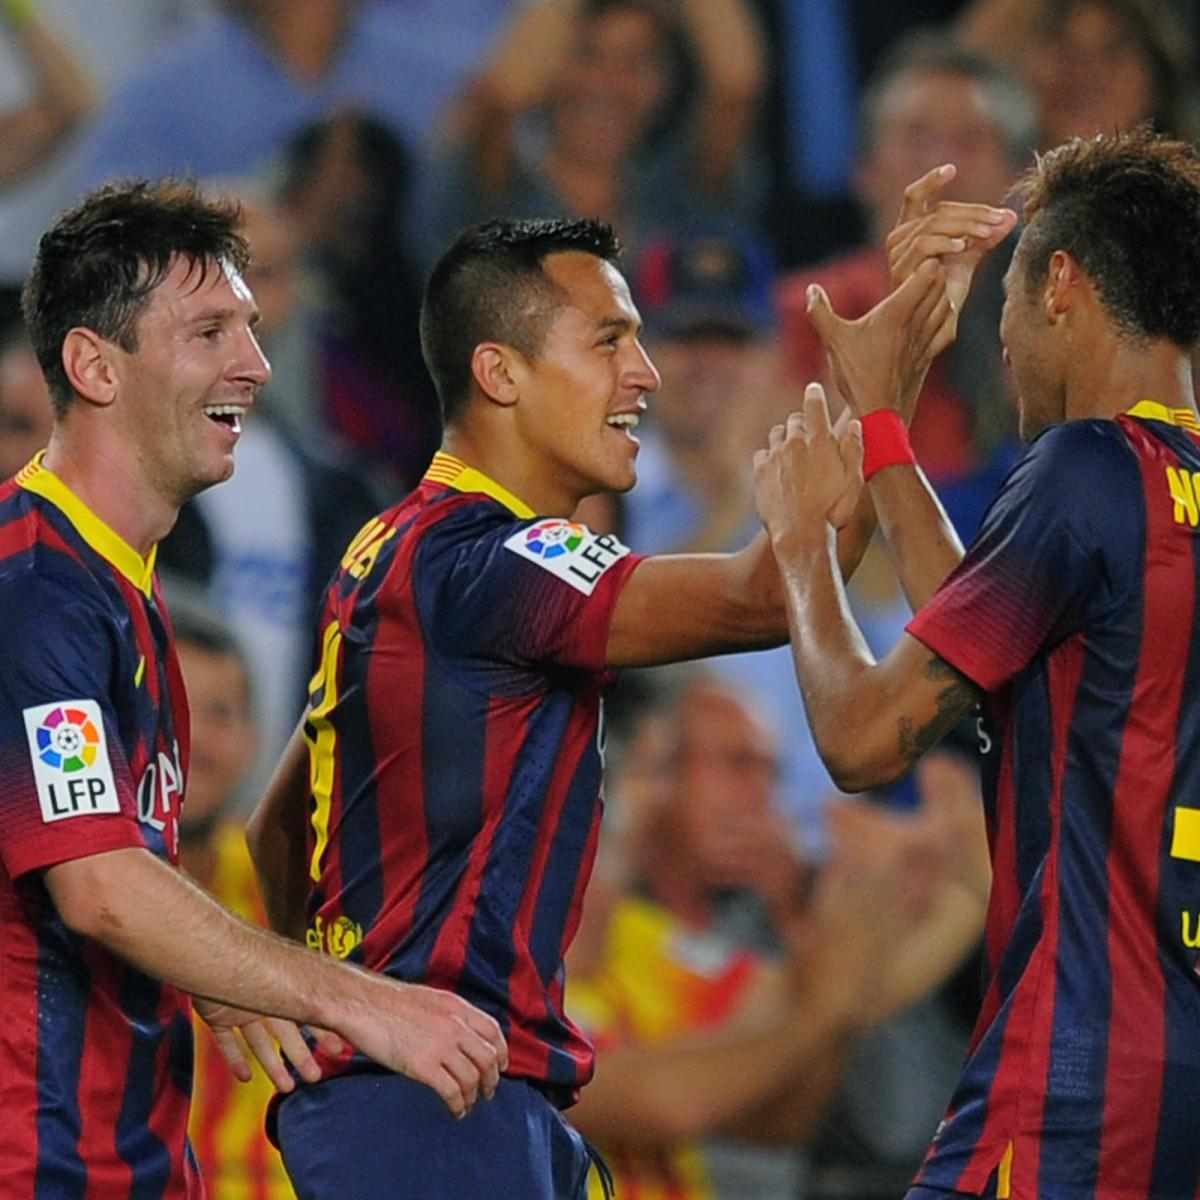 Barcelona Vs Celta Vigo In Youtube: Celta Vigo Vs. Barcelona: Live Player Ratings For Barca